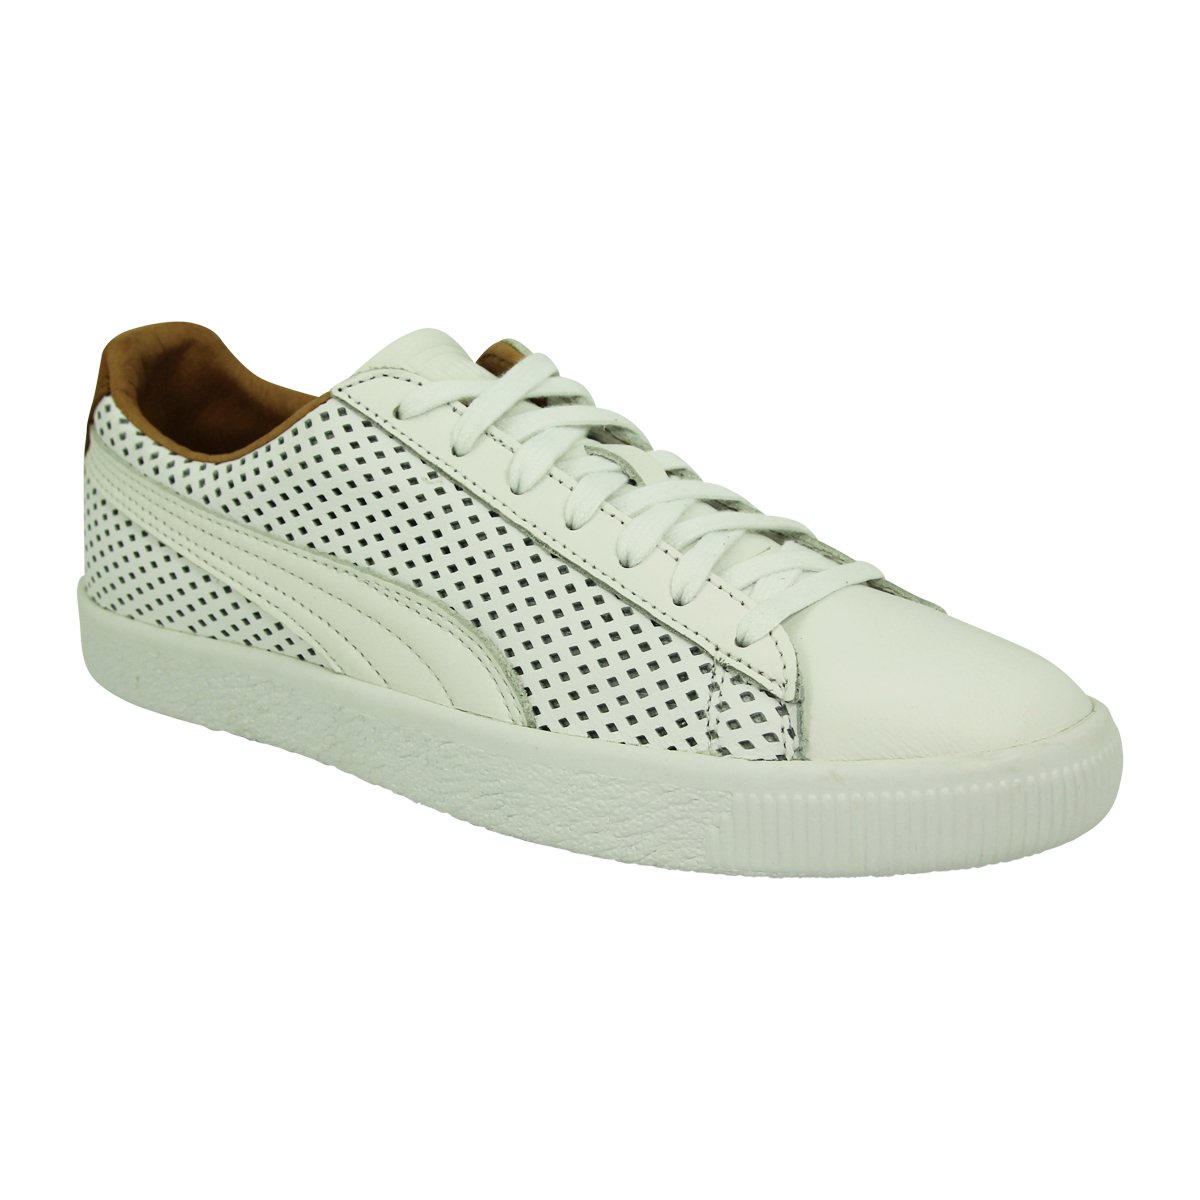 timeless design 63325 0866b Details about Low sneakers leather CLYDE COLORBLOCK 2